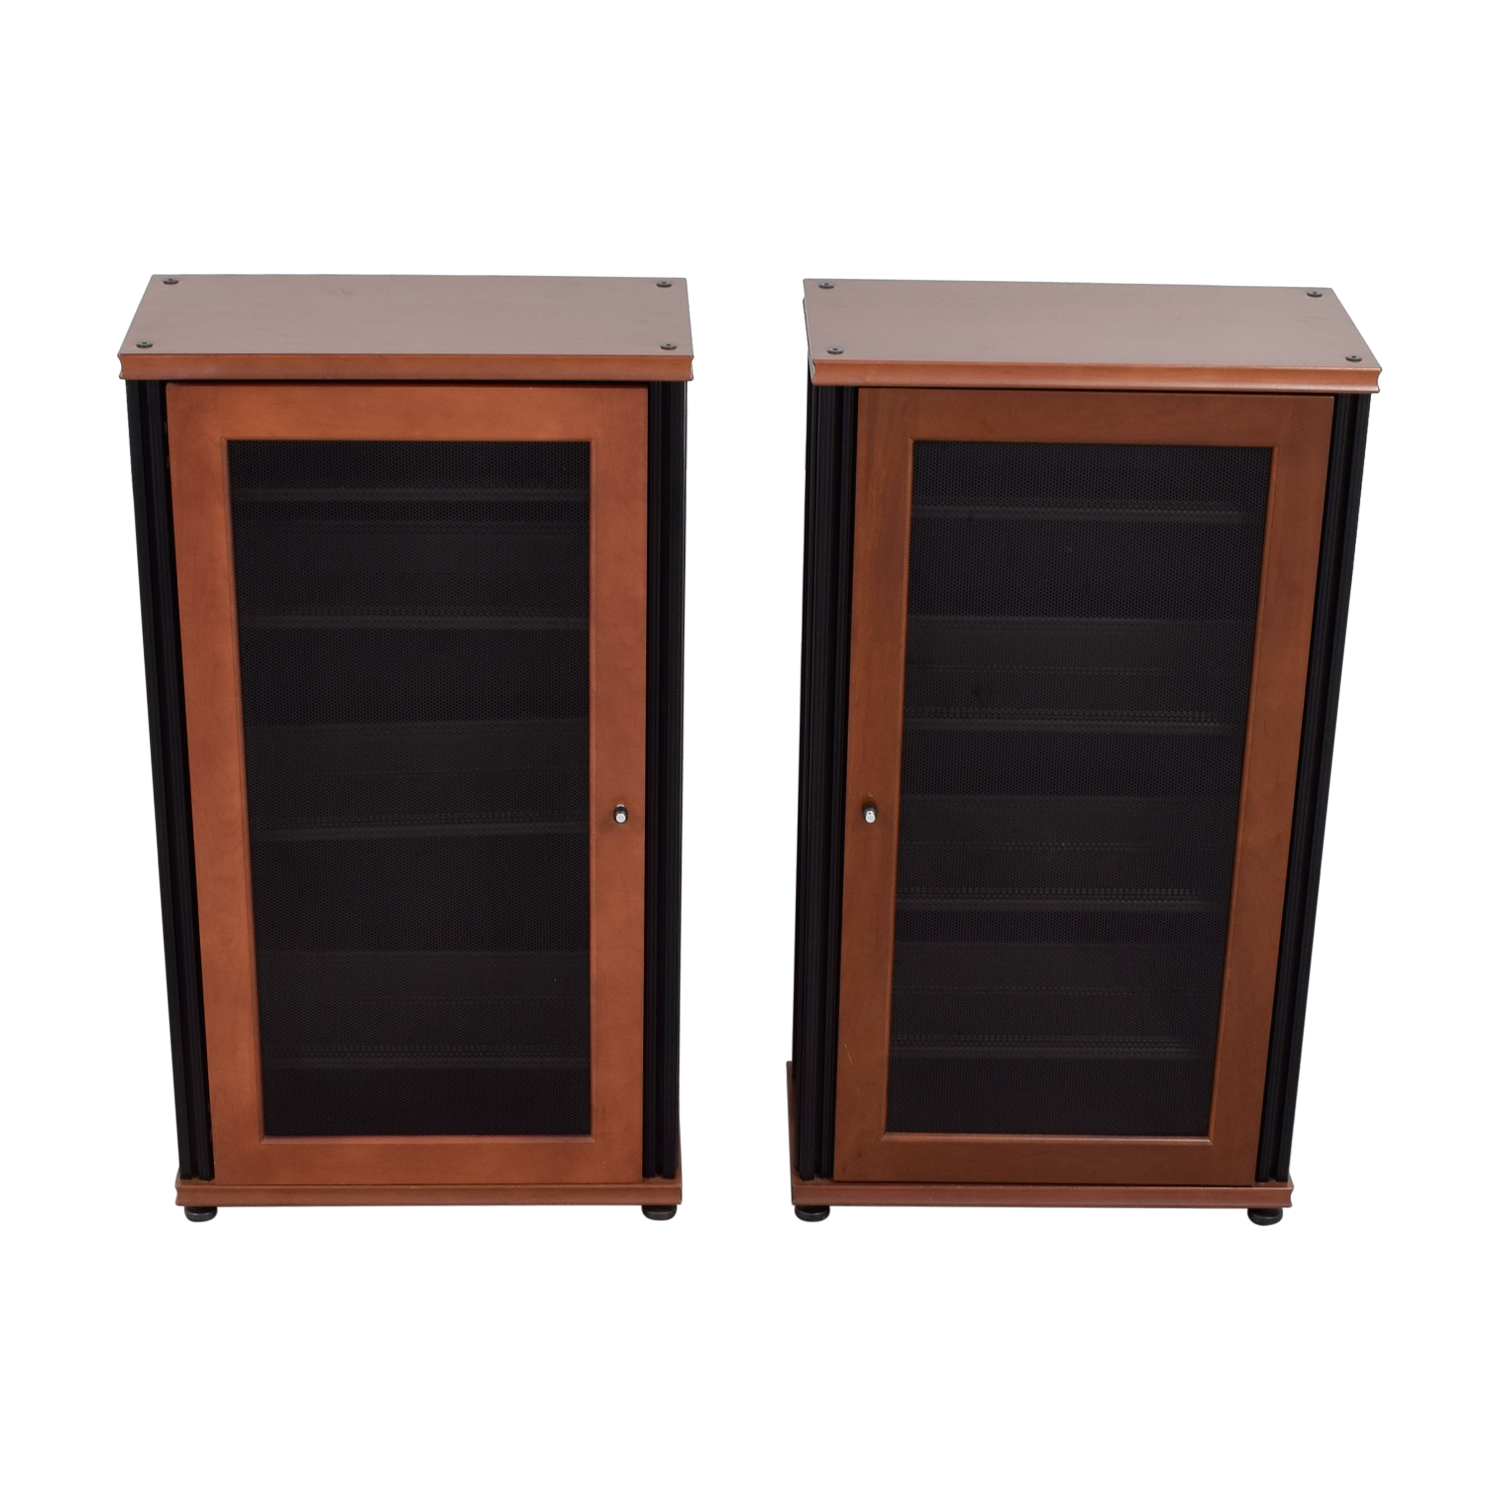 Salamander Designs Salamander Designs Synergy Media Cabinets with Glass Doors light brown